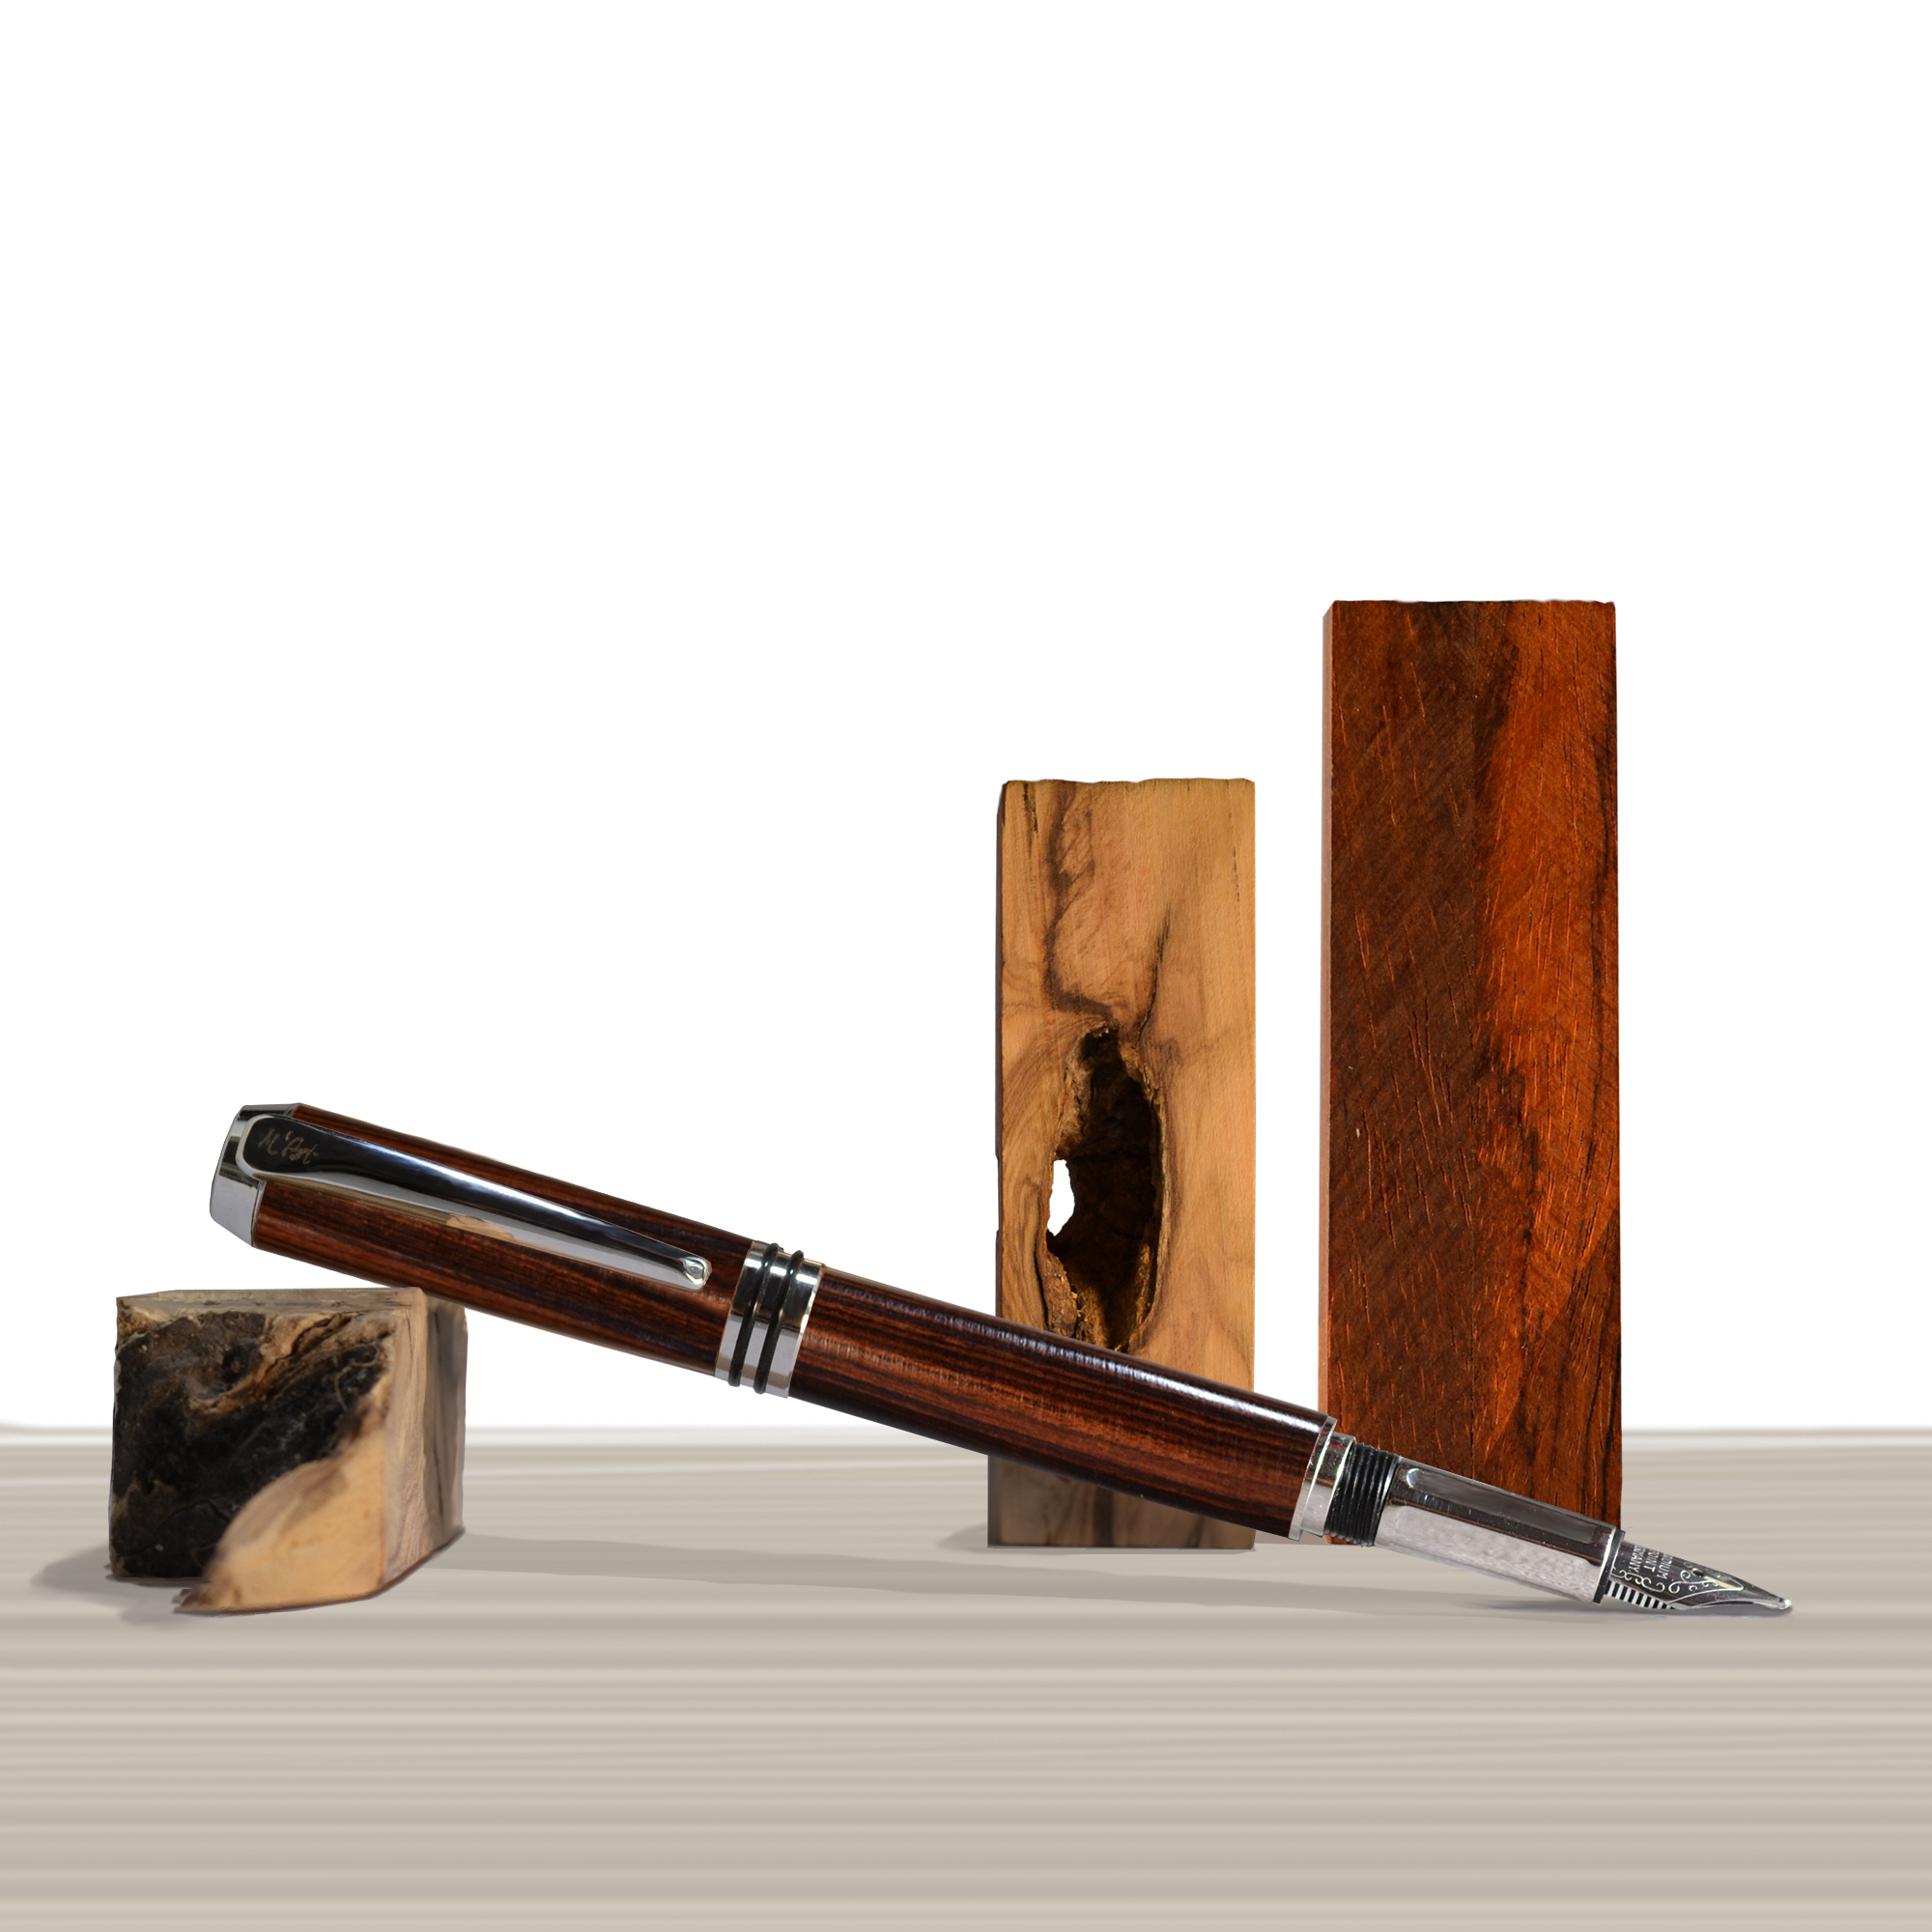 Antea fountain pen Pau Violeto wood